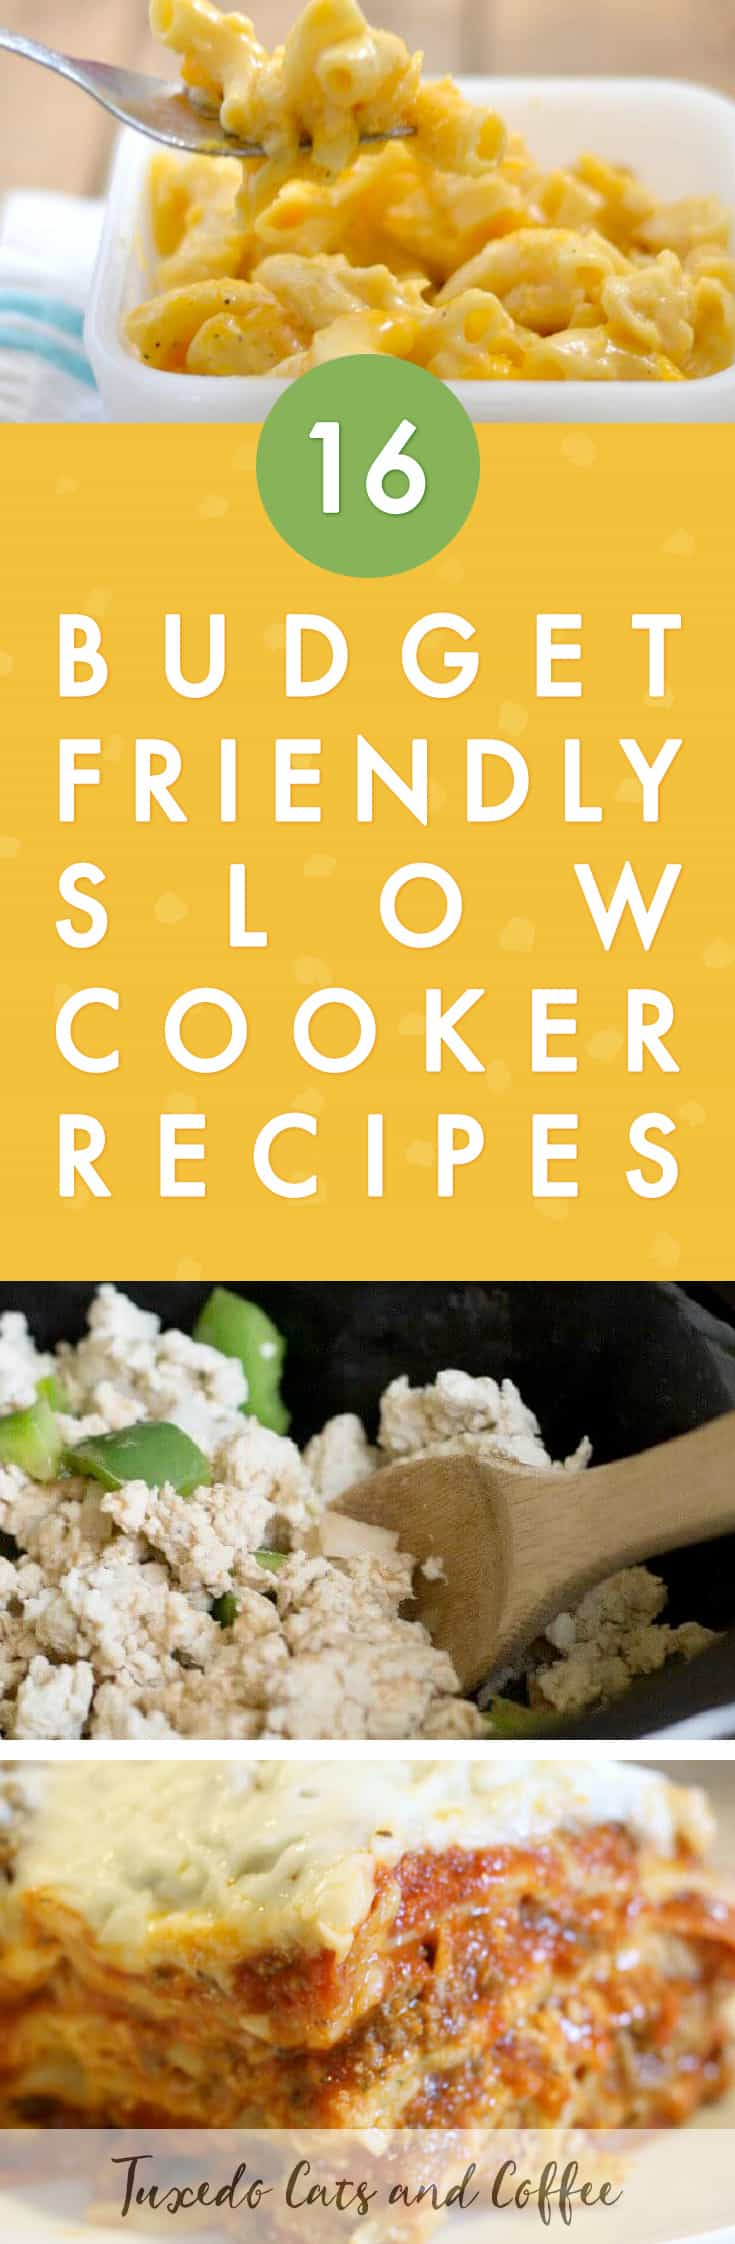 Looking for a quick and simple crockpot recipe for dinner? Here are 16 cheap and easy slow cooker recipes perfect for a main course or entree.